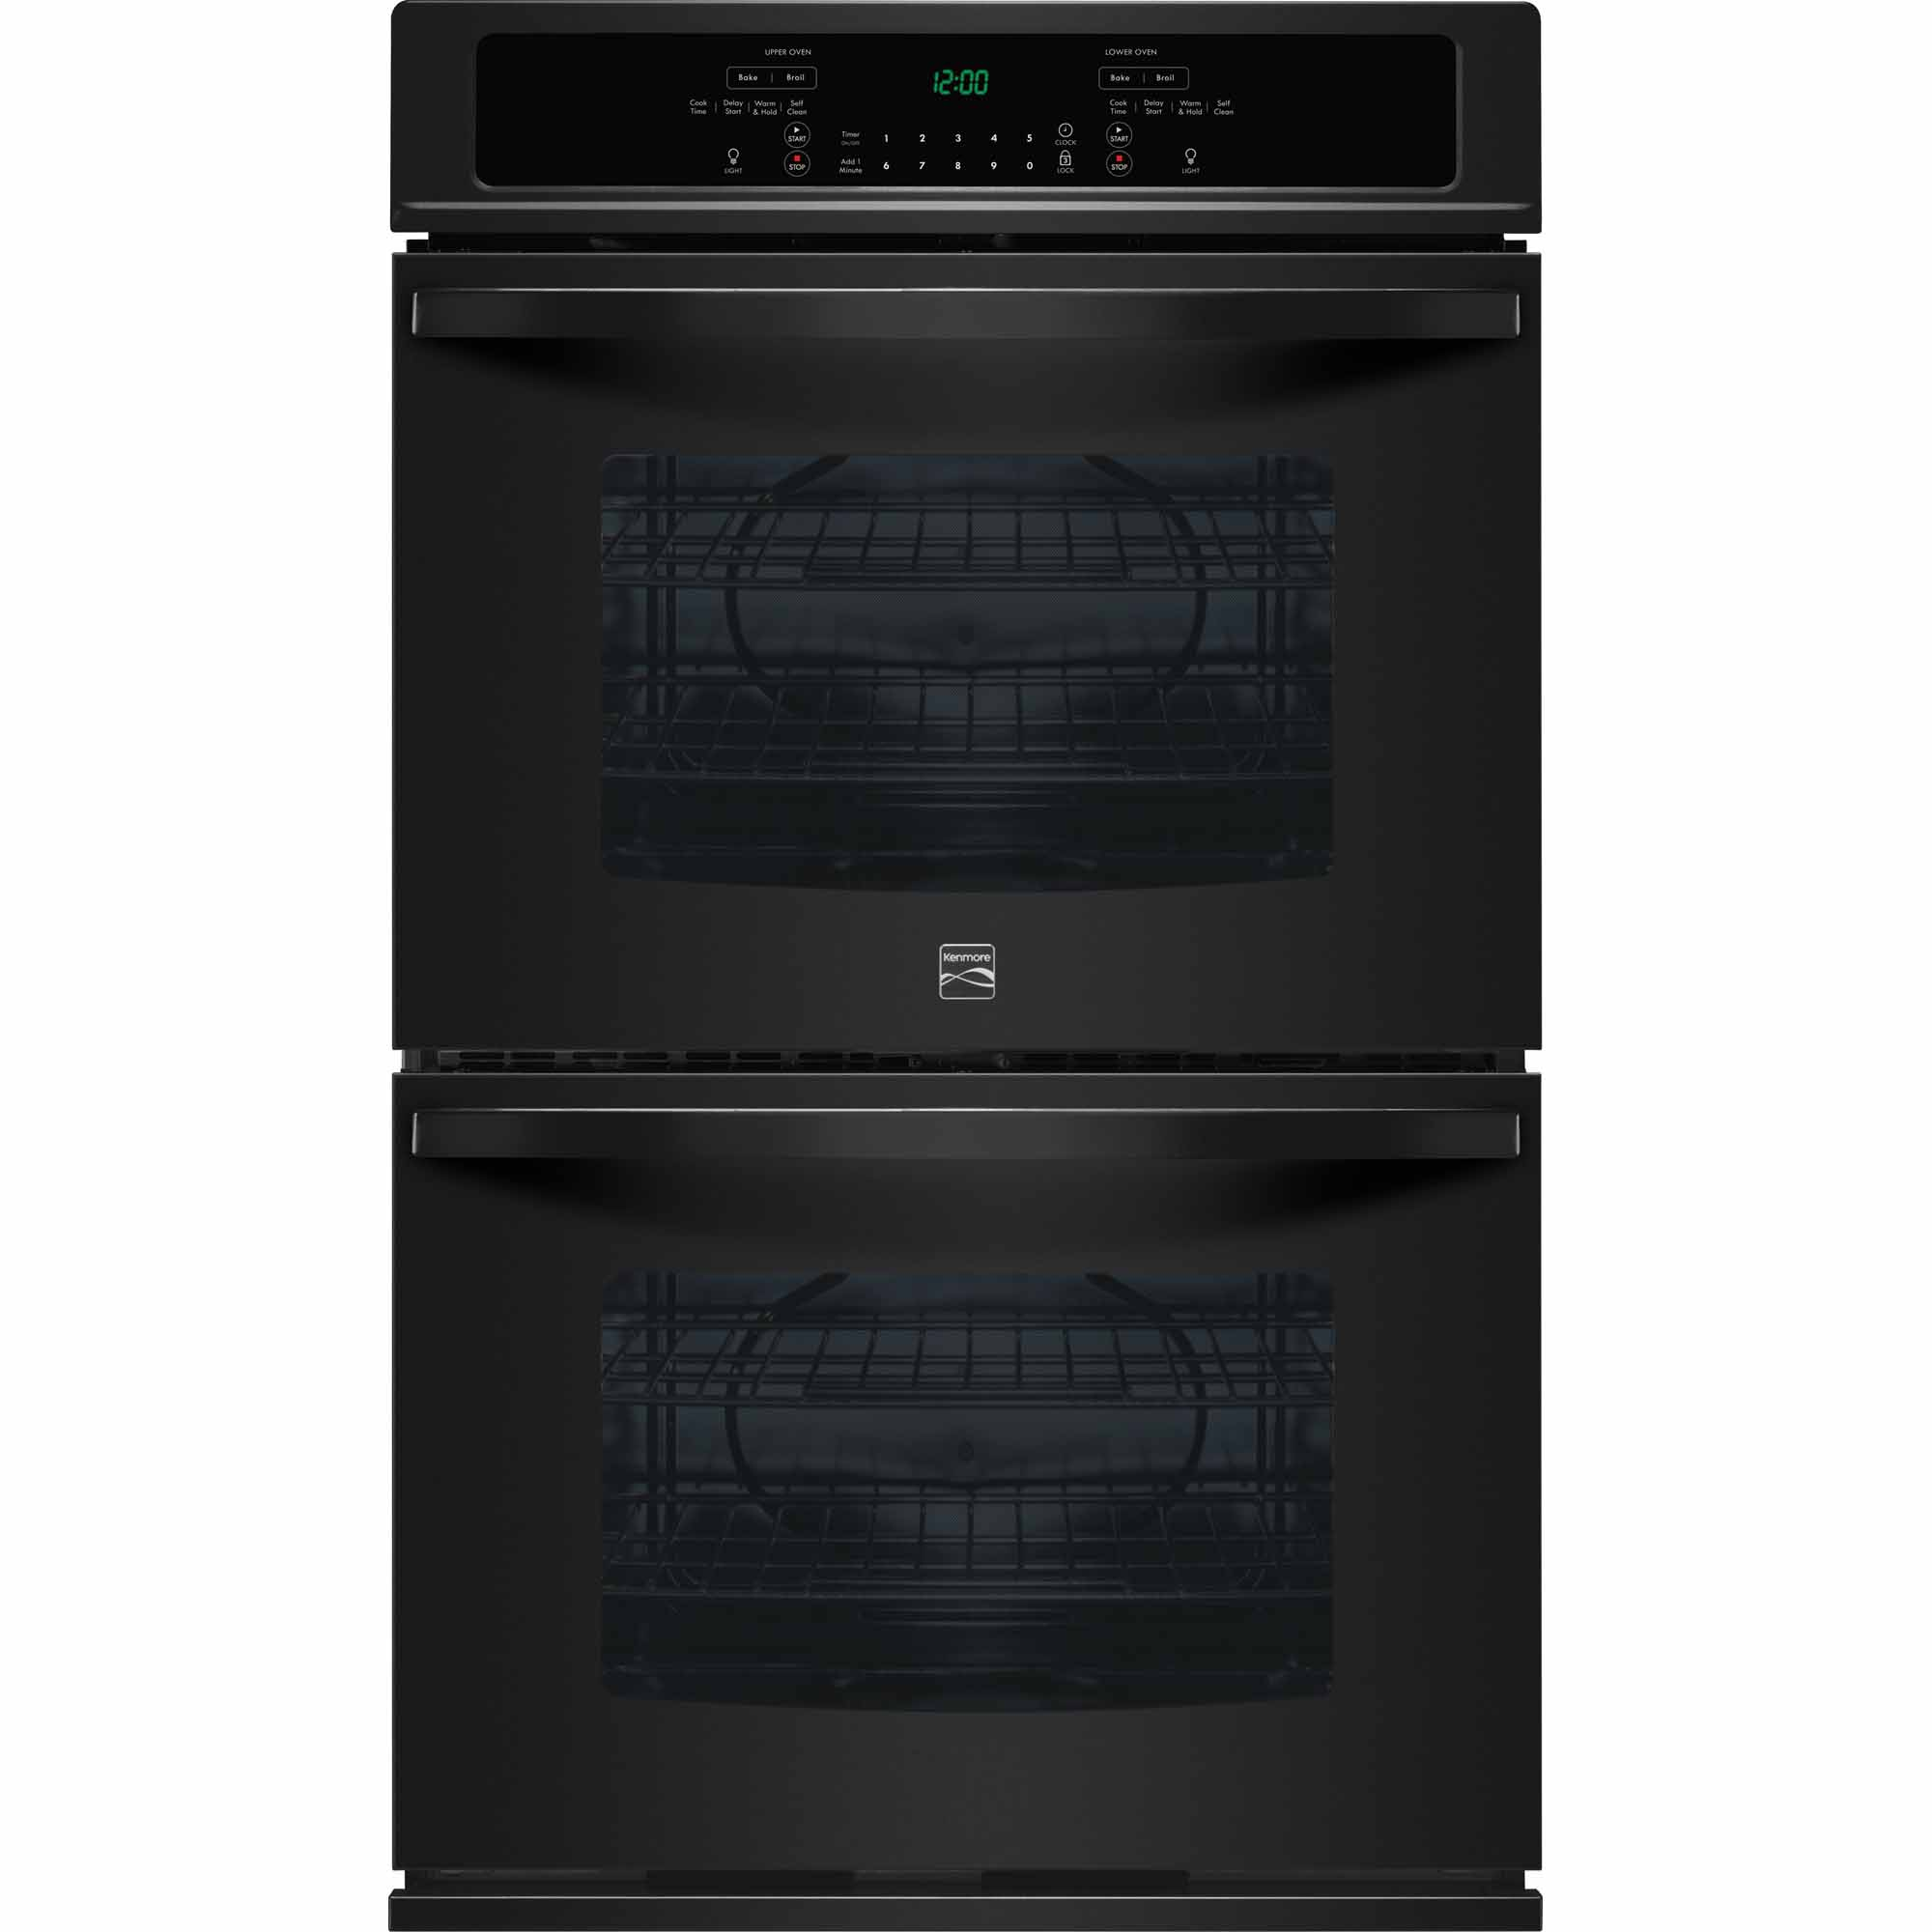 Kenmore 49419 27 Self-Clean Double Electric Wall Oven - Black